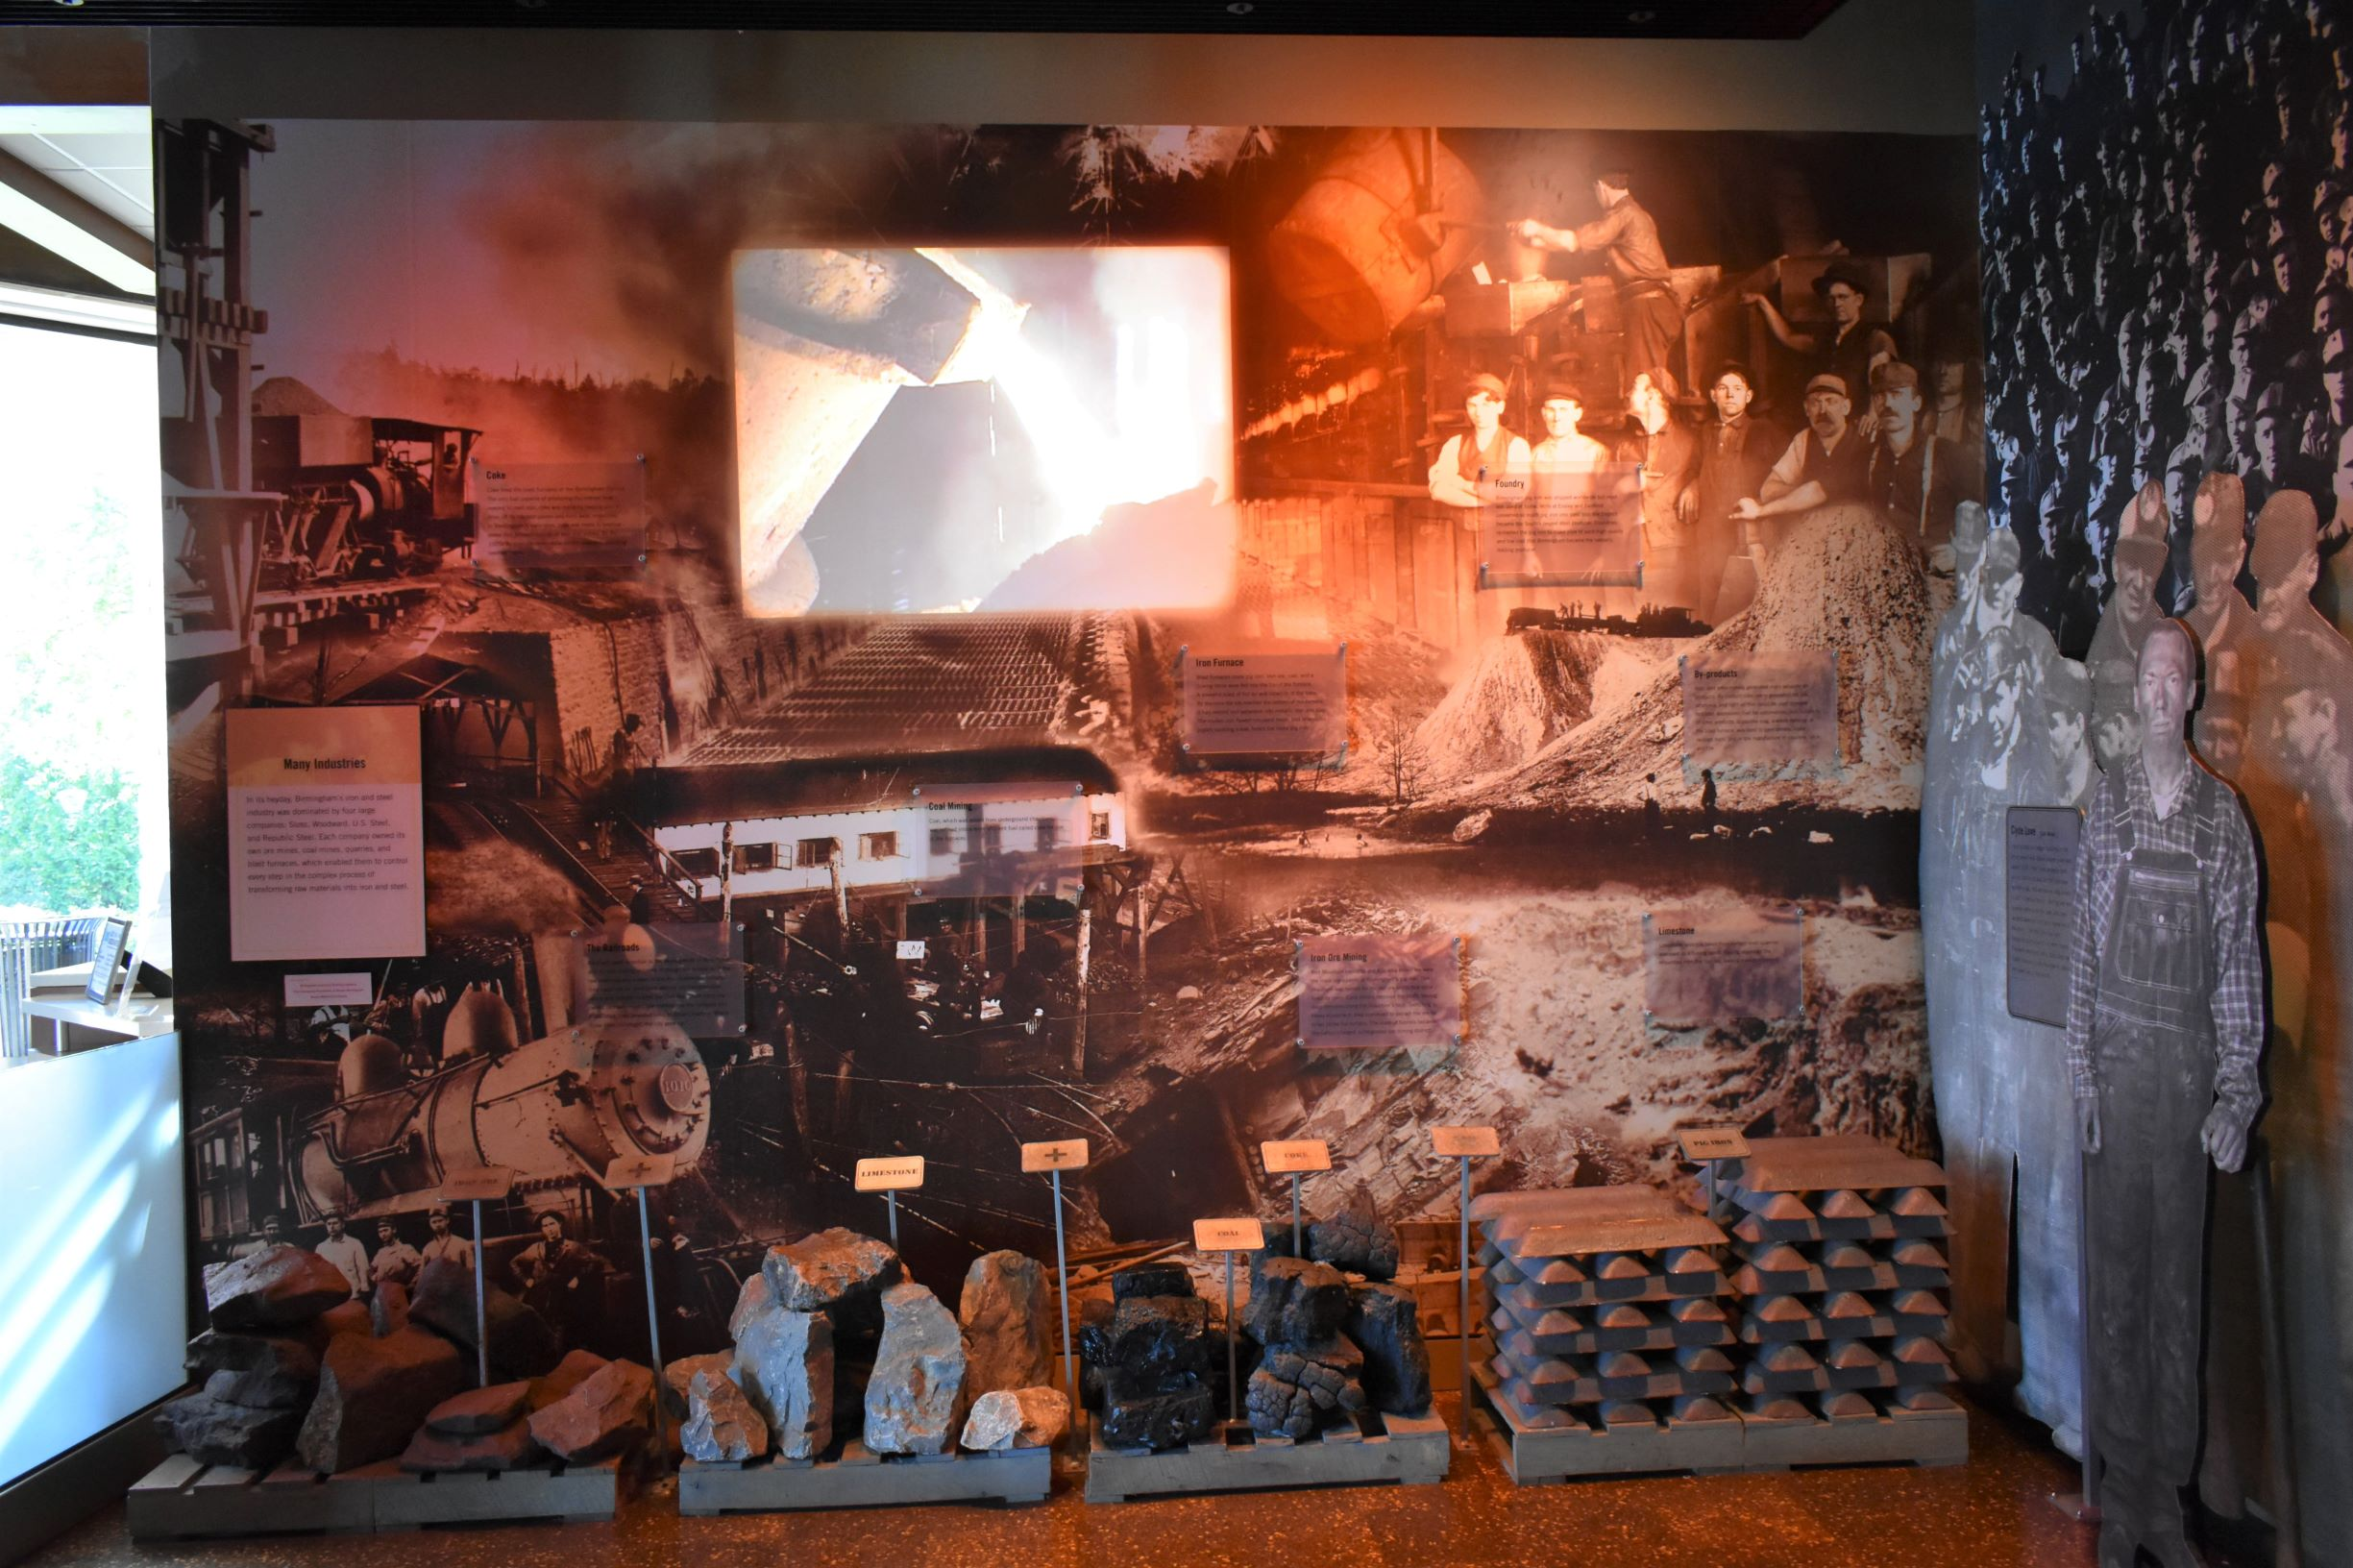 Interior of museum gallery. Large pieces of minerals sit on pallets in floor including iron ore, limestone, coal, and coke. On the right there is a stack of iron ingots. A video in center of wall shows molten iron pouring from a ladle.